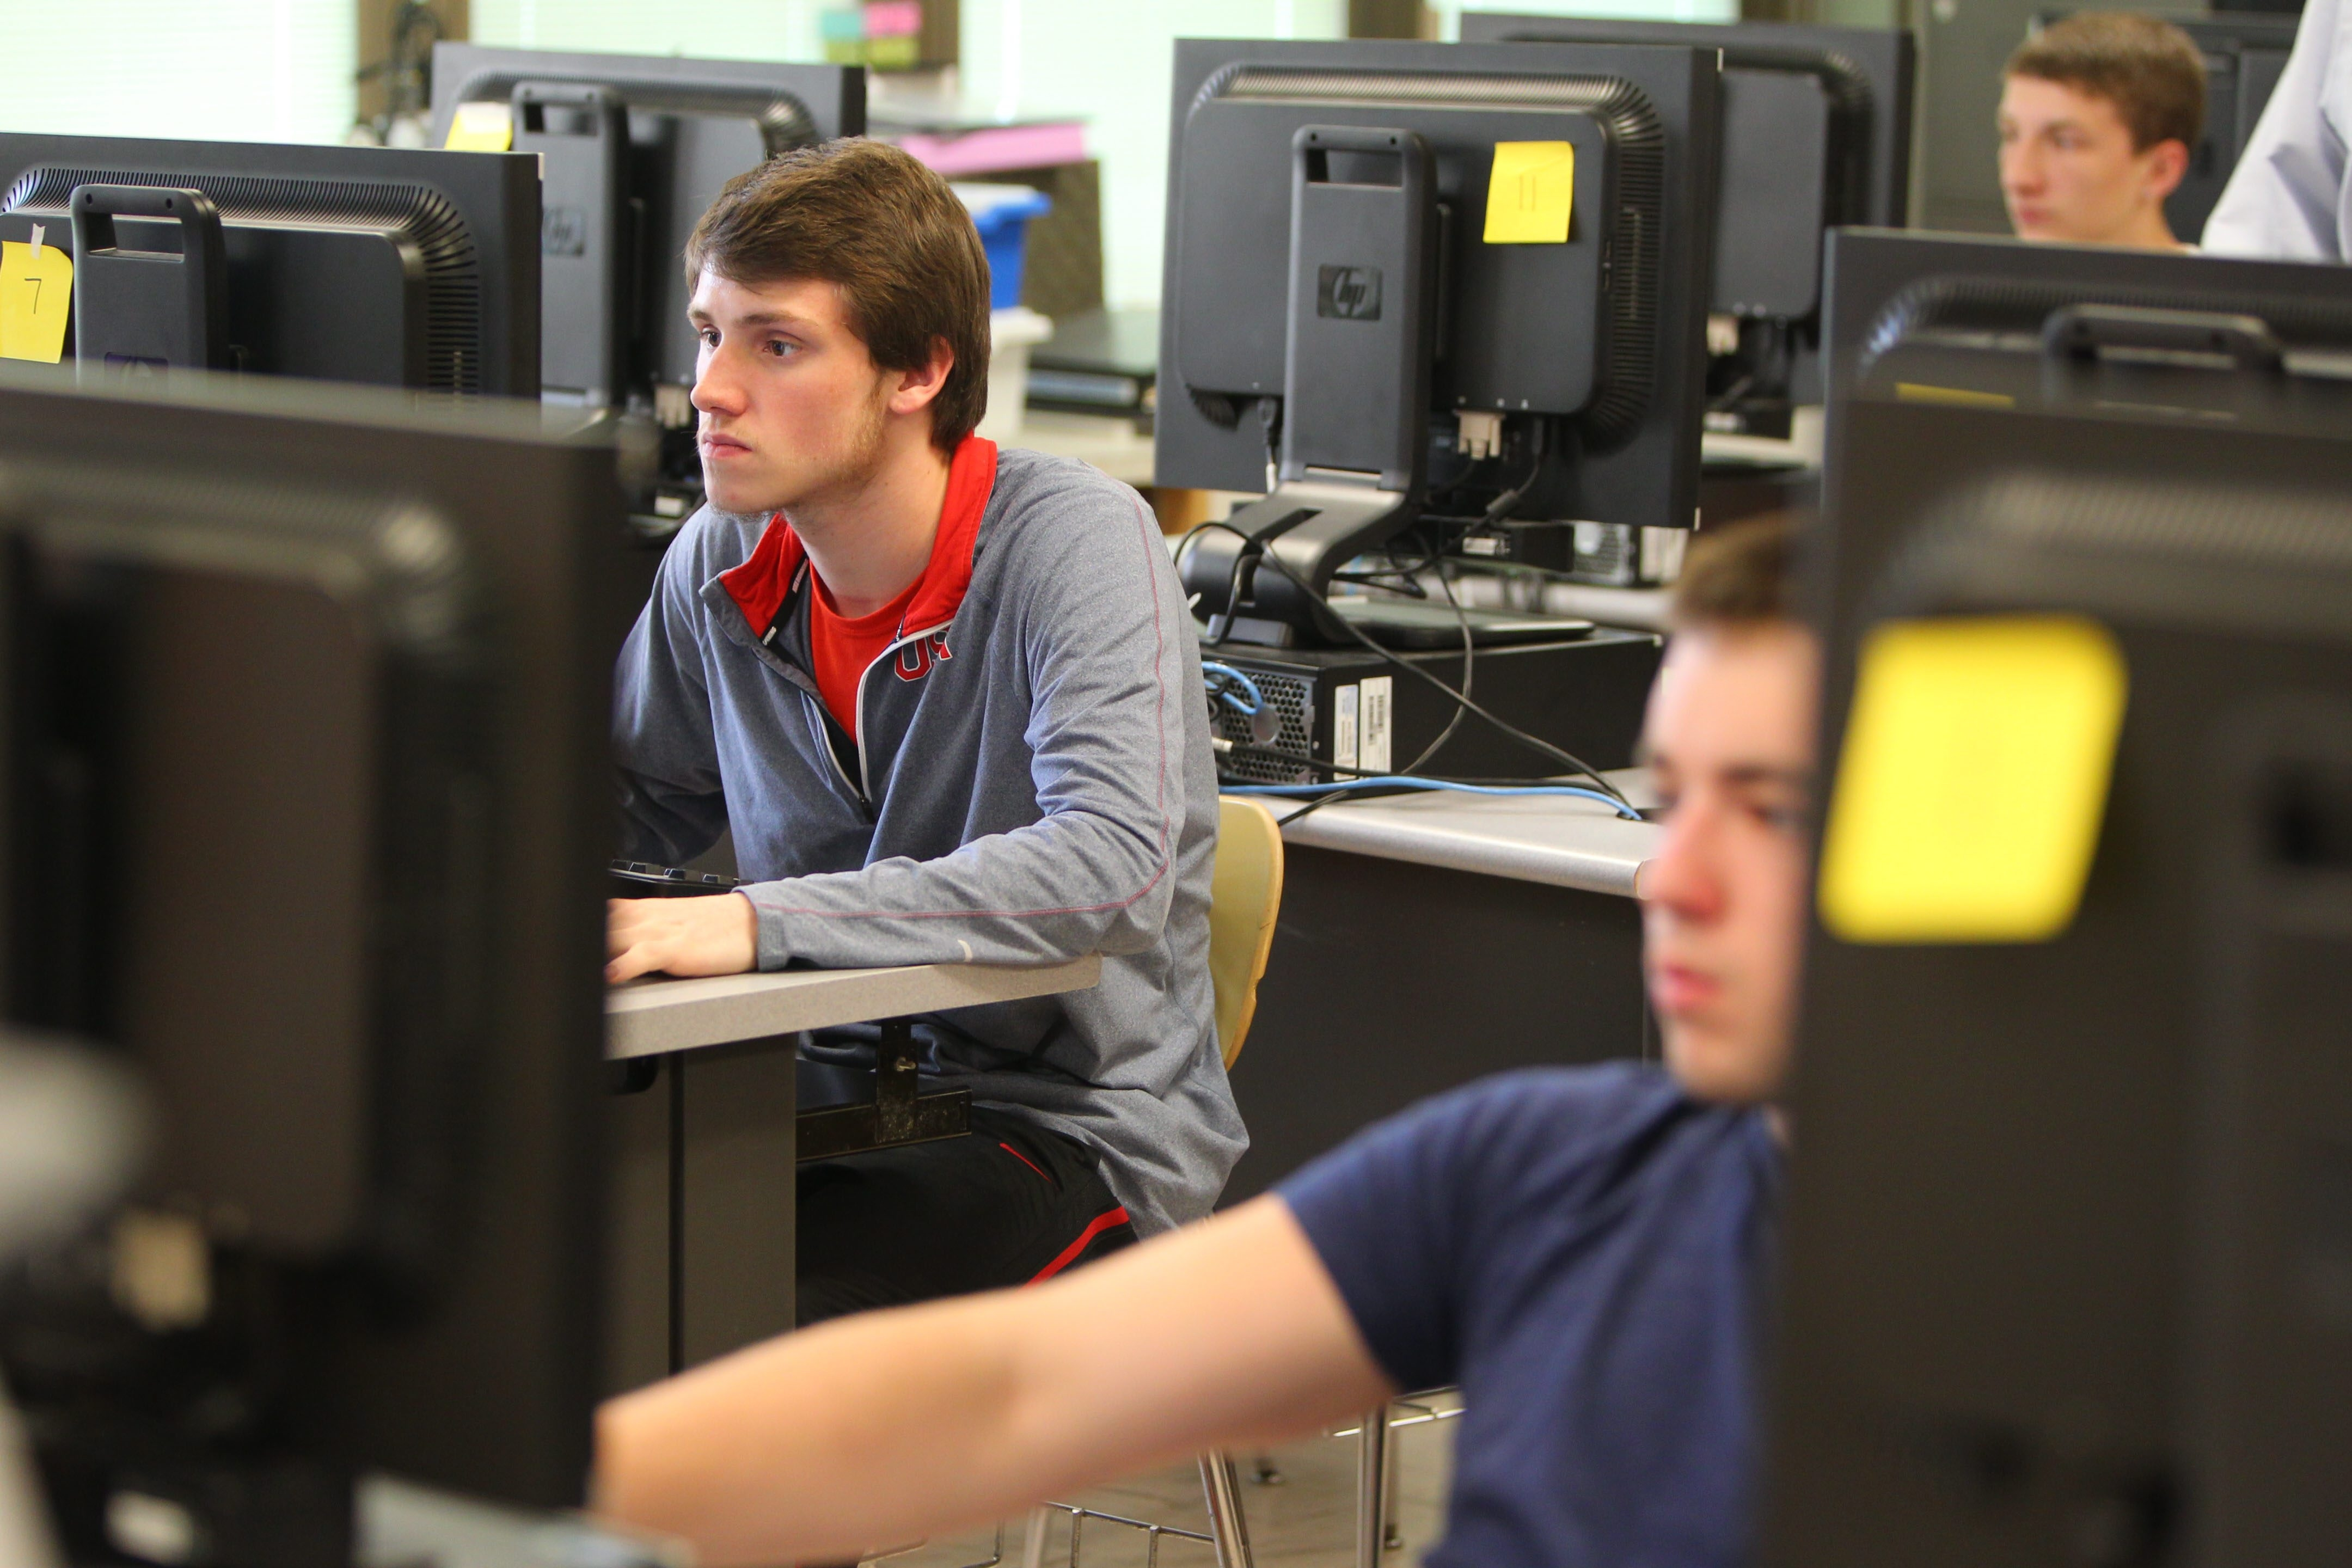 Students in the Cheektowaga-Sloan school district work on a project in a CAD (computer-aided drafting) class at John F. Kennedy High School recently.